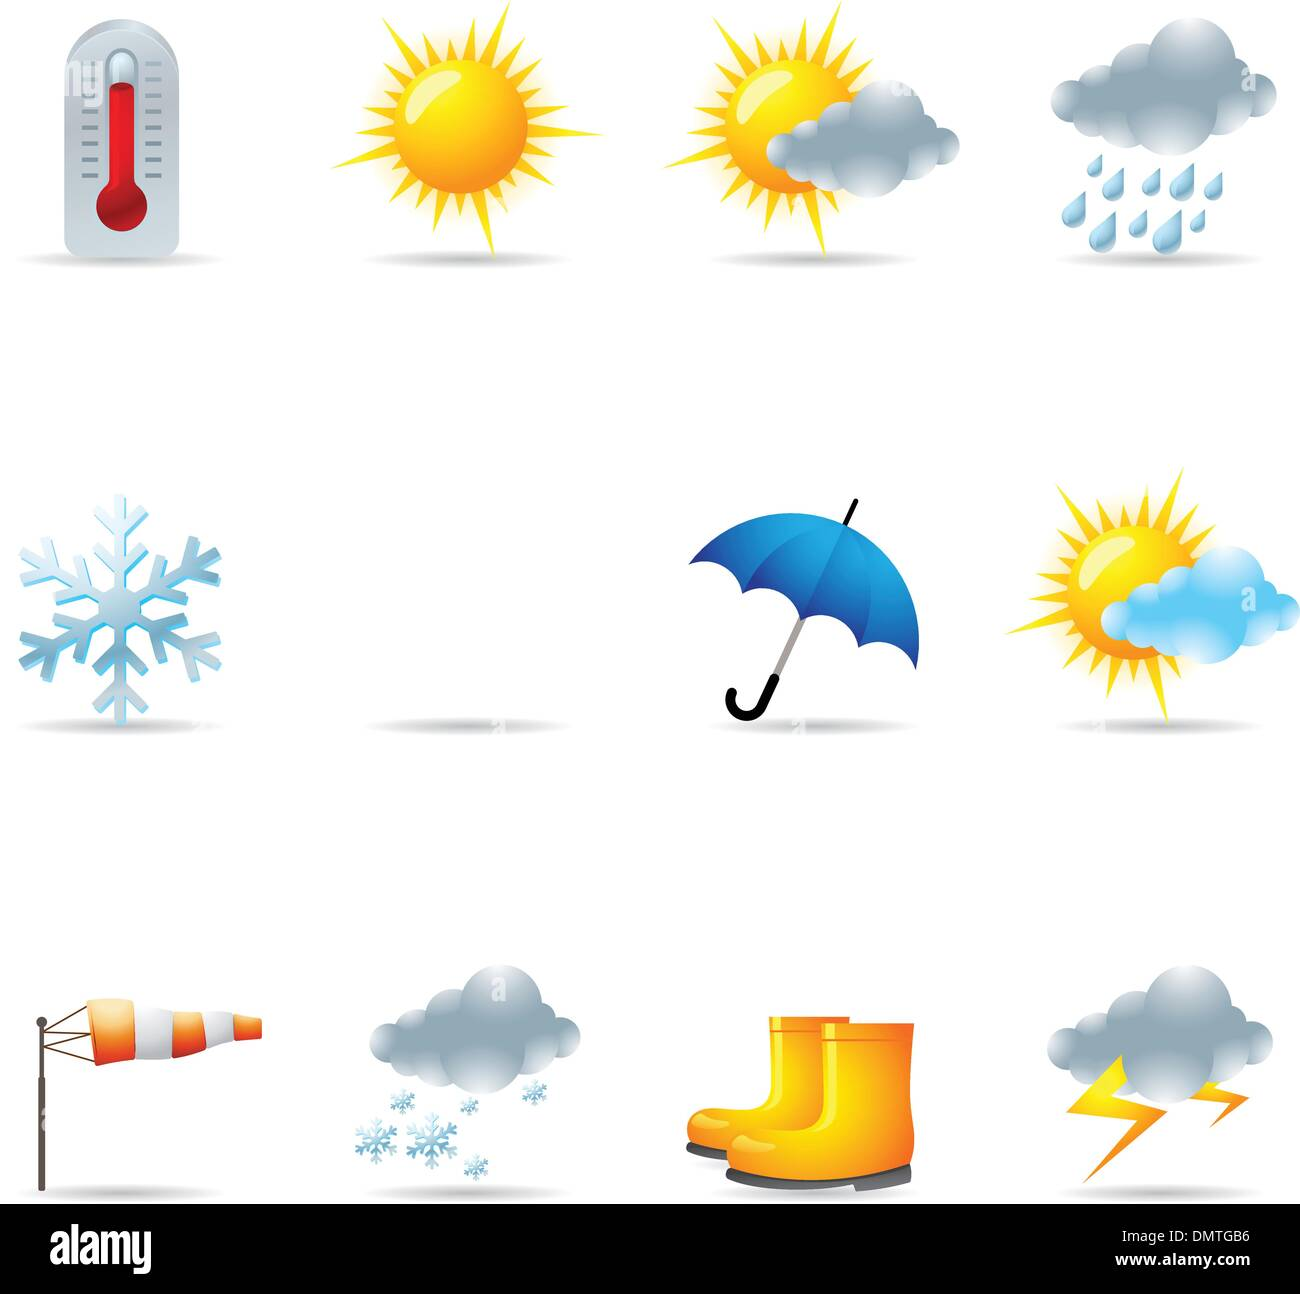 Weather Forecast Symbol Stock Photos Weather Forecast Symbol Stock